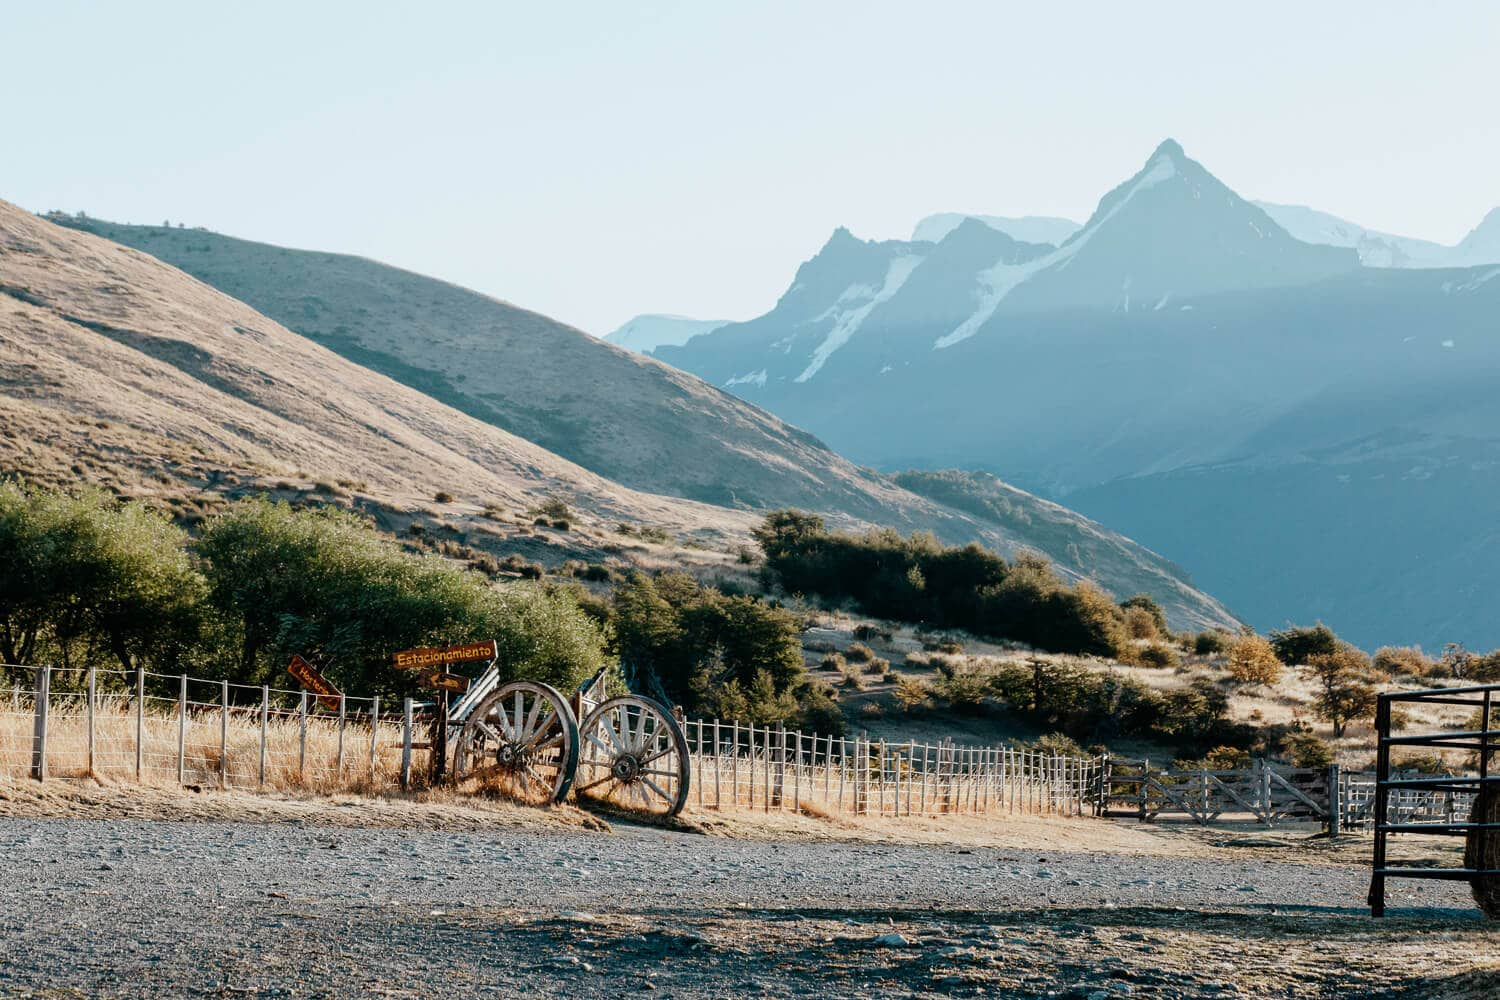 Mountains in the background are bathed in the sunset behind a fence at an El Calafate ranch.